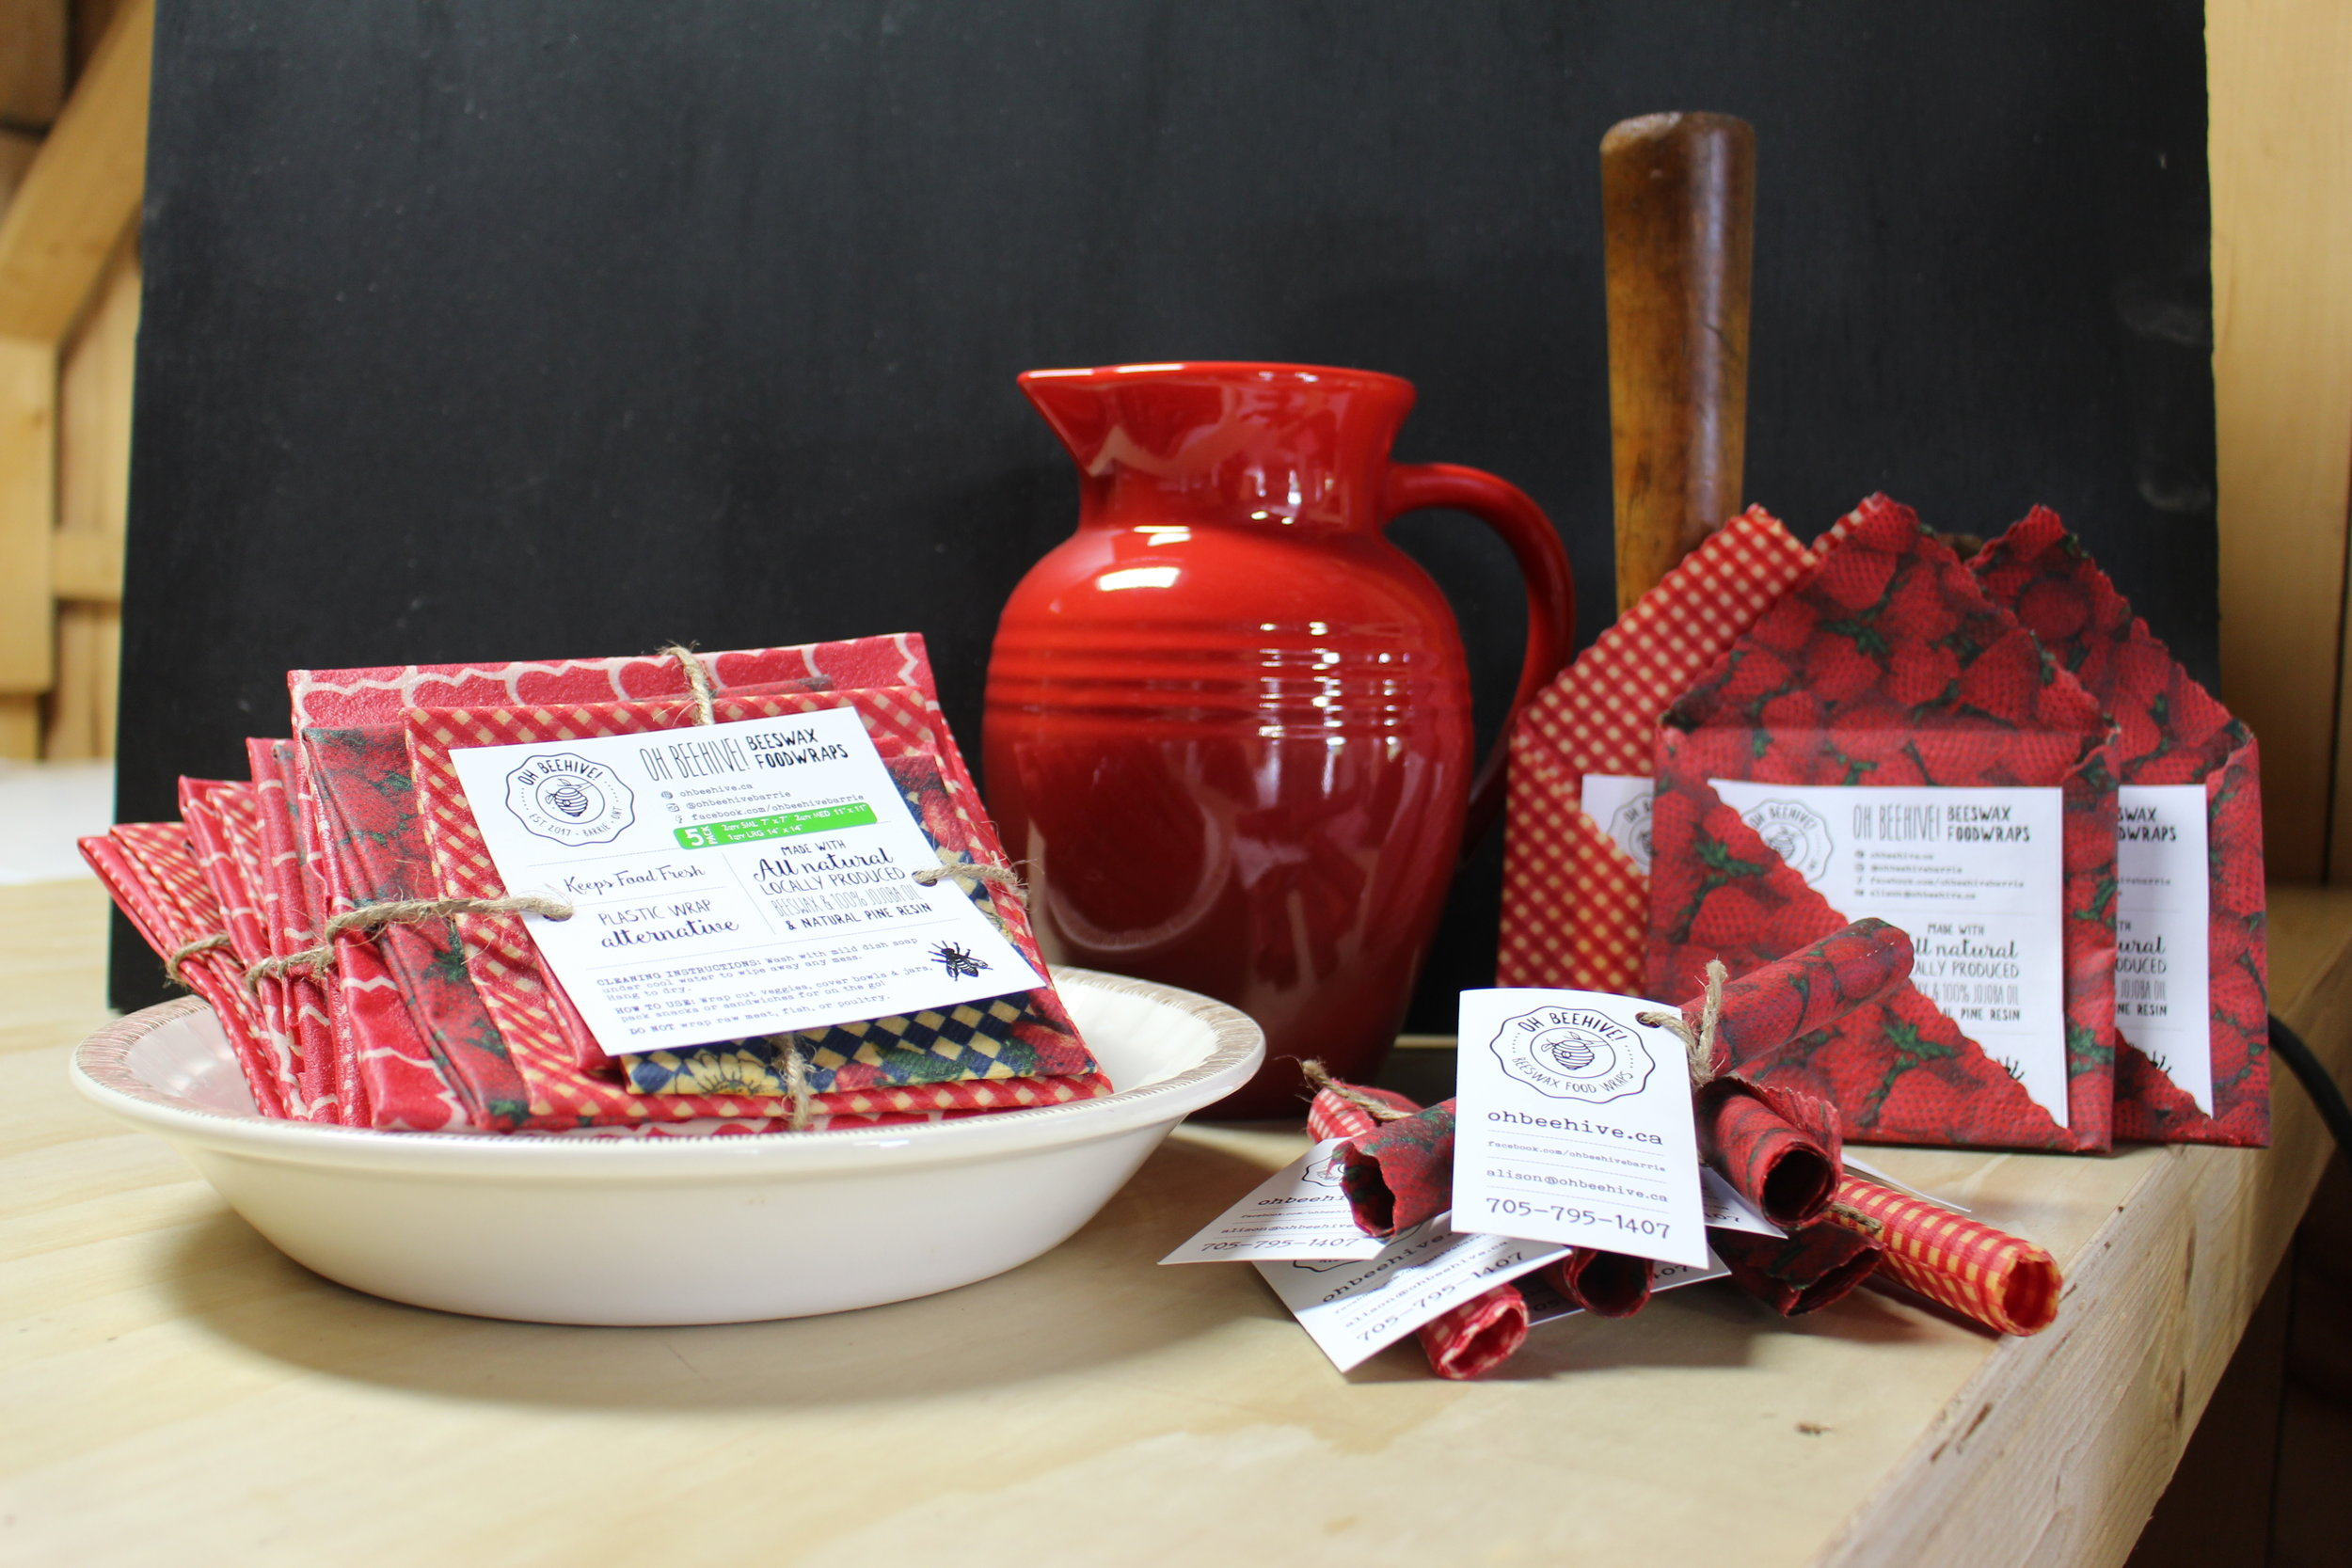 OH BEEHIVE! Beeswax Food Wraps   These strawberry-themed wraps are a plastic-wrap alternative and are made with all natural locally produced beeswax, jojoba oil and natural pine resin.